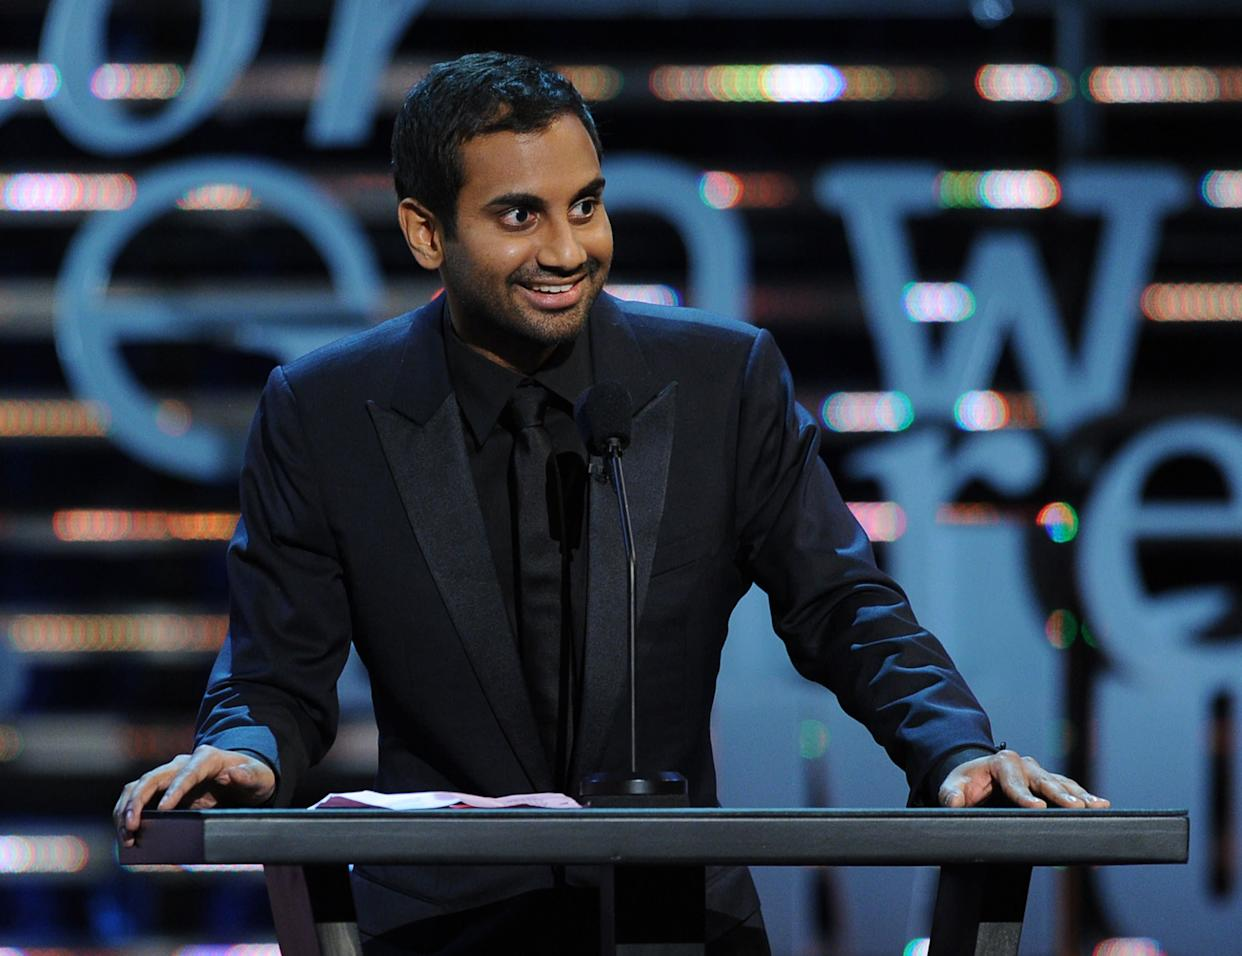 CULVER CITY, CA - AUGUST 25: Actor Aziz Ansari speaks onstage during The Comedy Central Roast of James Franco at Culver Studios on August 25, 2013 in Culver City, California. The Comedy Central Roast Of James Franco will air on September 2 at 10:00 p.m. ET/PT. (Photo by Kevin Winter/Getty Images for Comedy Central)